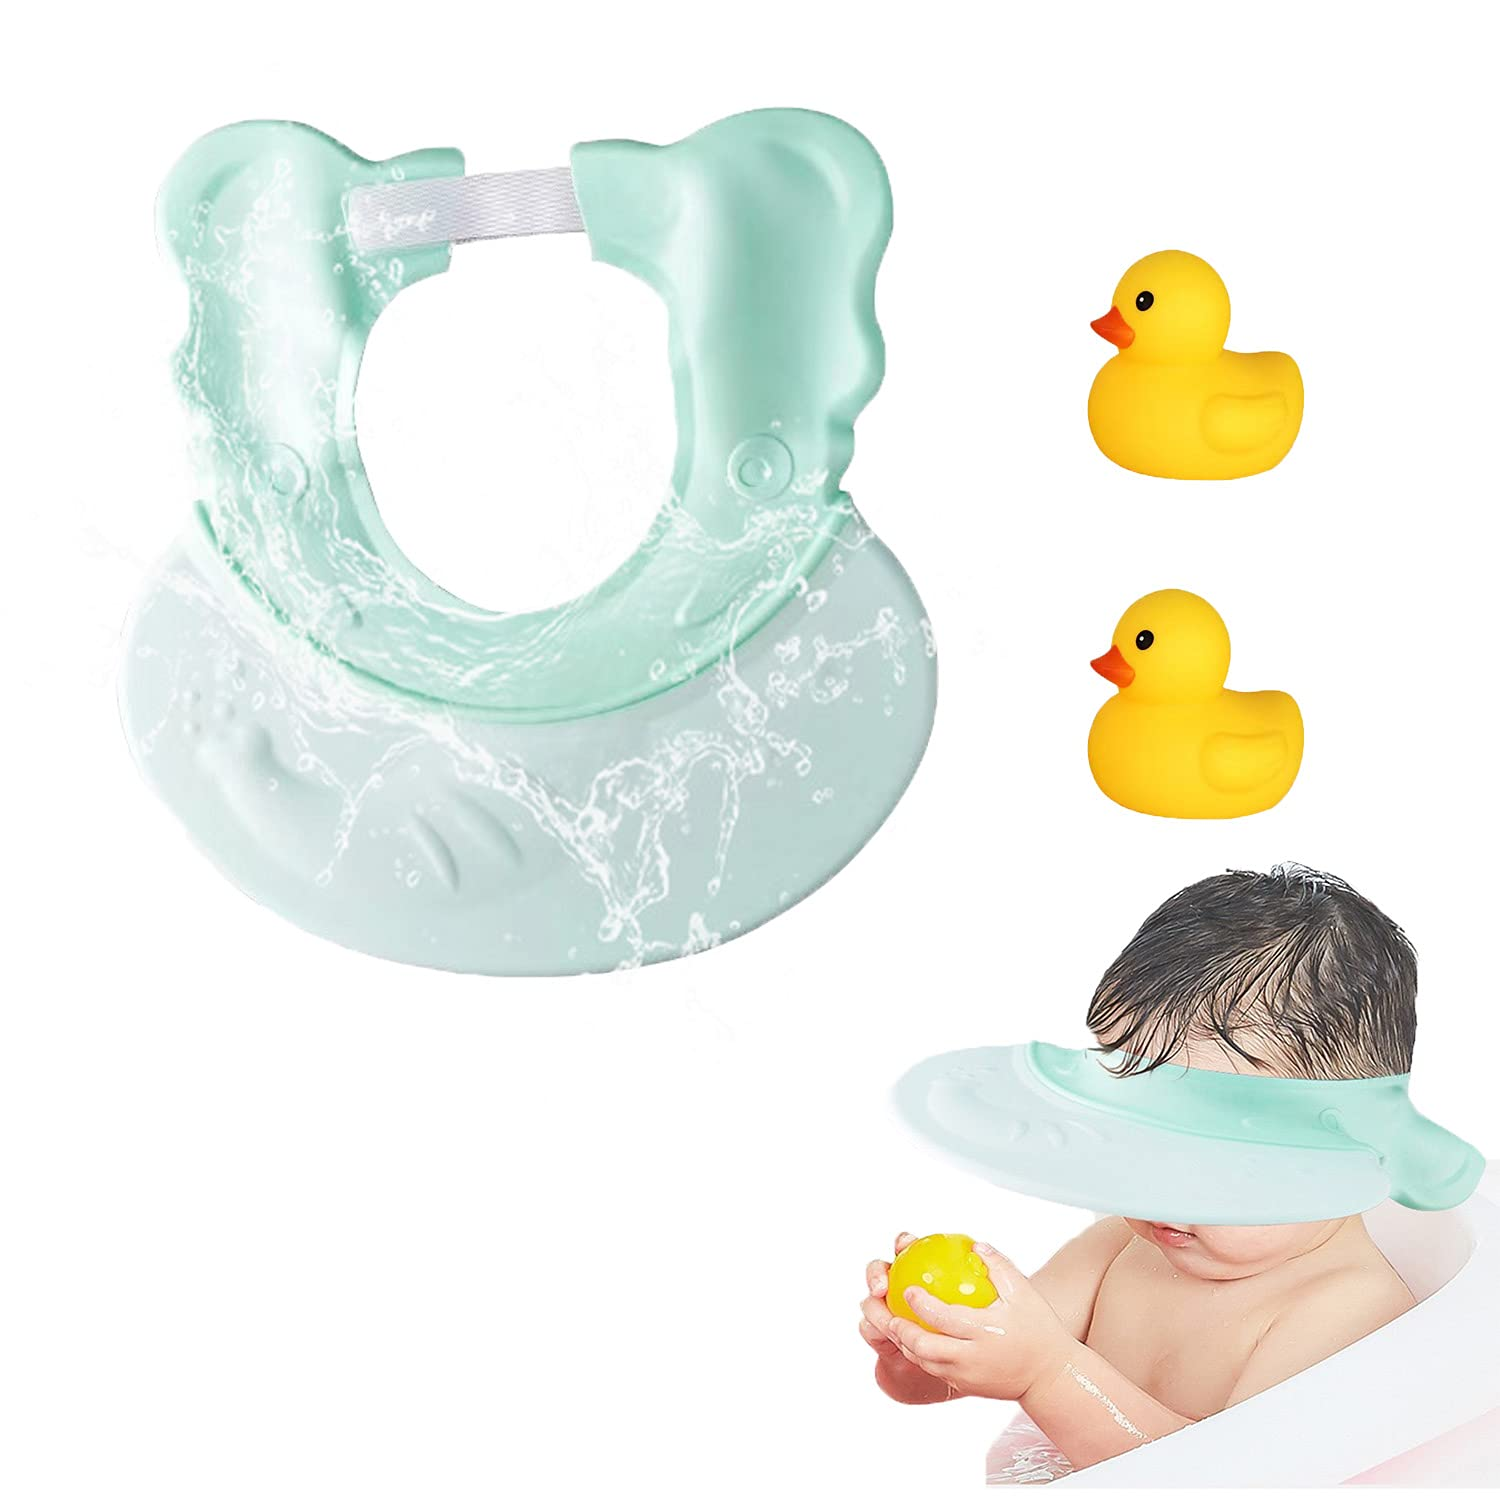 Kids Shower hat, Baby Shower Cap, Baby Bath Visor, Adjustable Waterproof Silicone Shampoo Bathing Hat, with 2 Little Duck, Protect Eye&Ear for Infants, Kids…